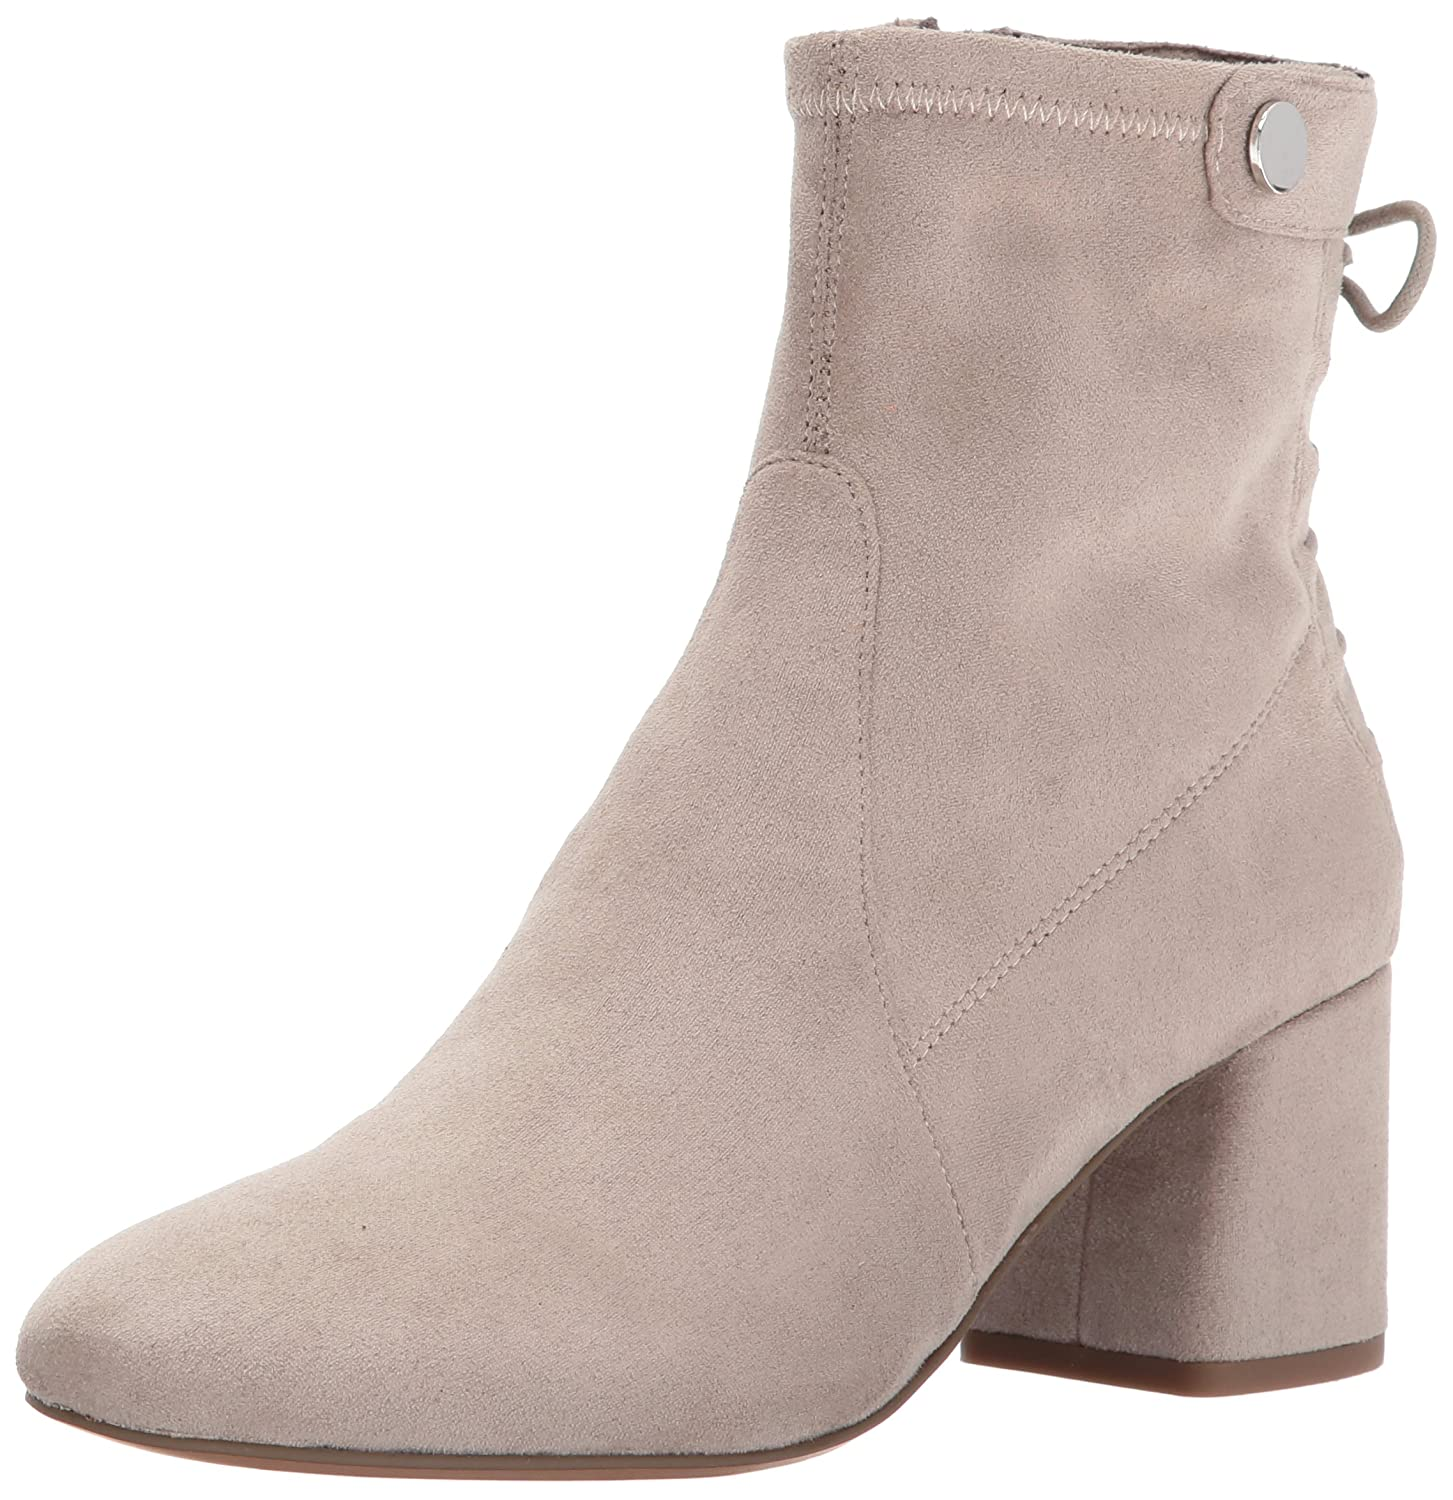 Franco Sarto Women's Josey Ankle Boot B071YT1RGJ 9 B(M) US|Warm Grey